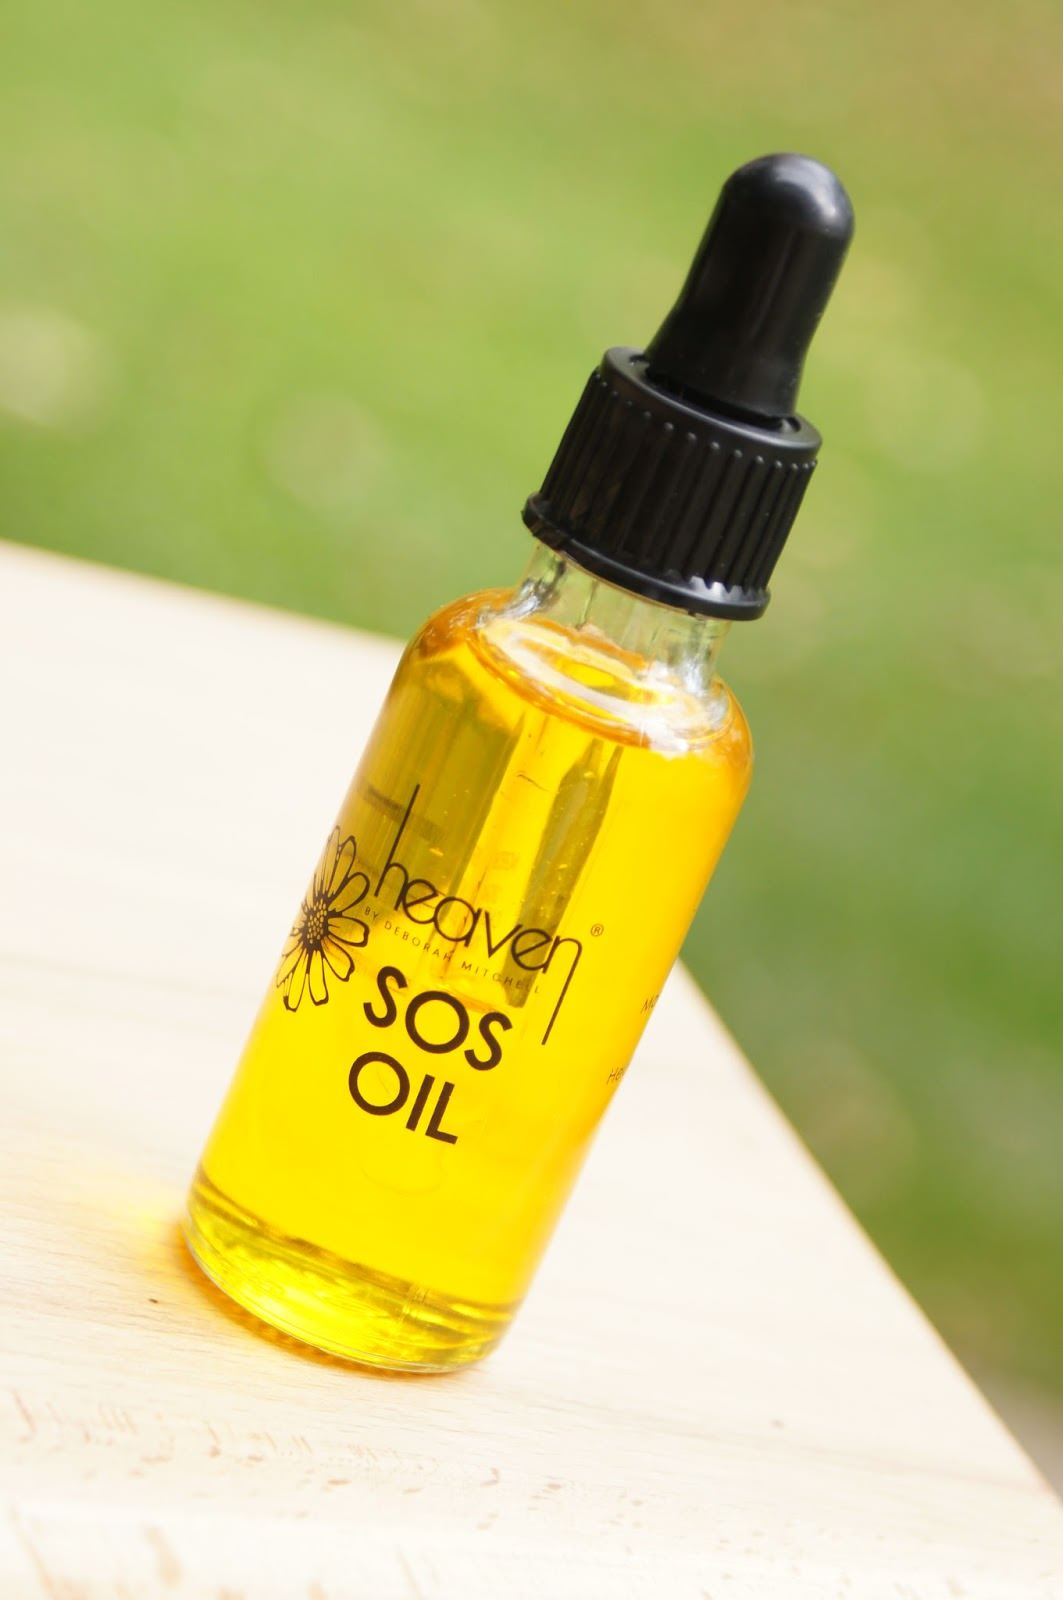 heaven by deborah mitchell sos oil beauty blog review